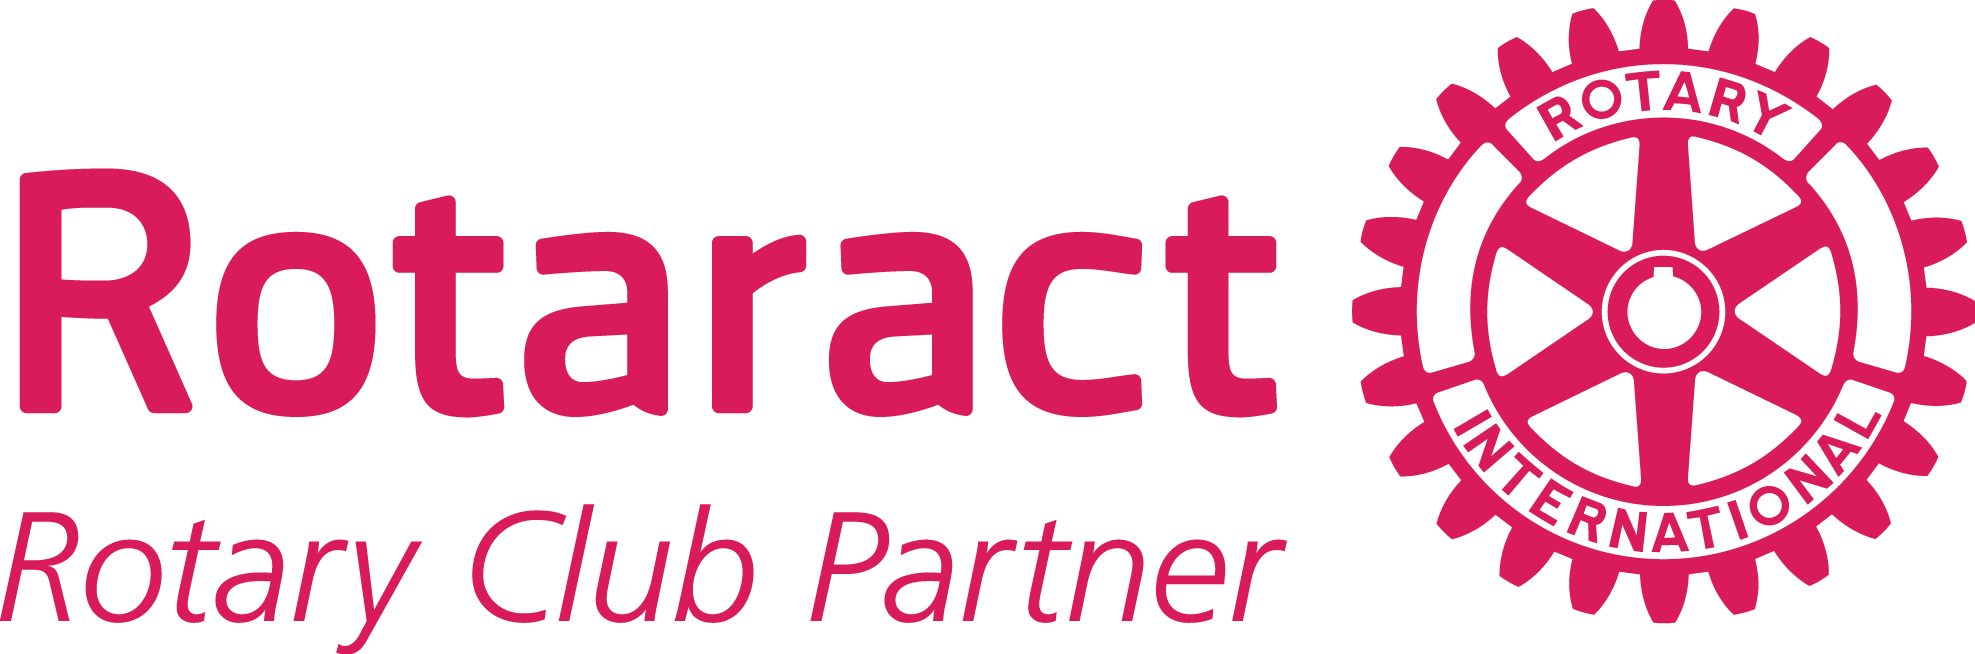 Capital City Rotaract logo